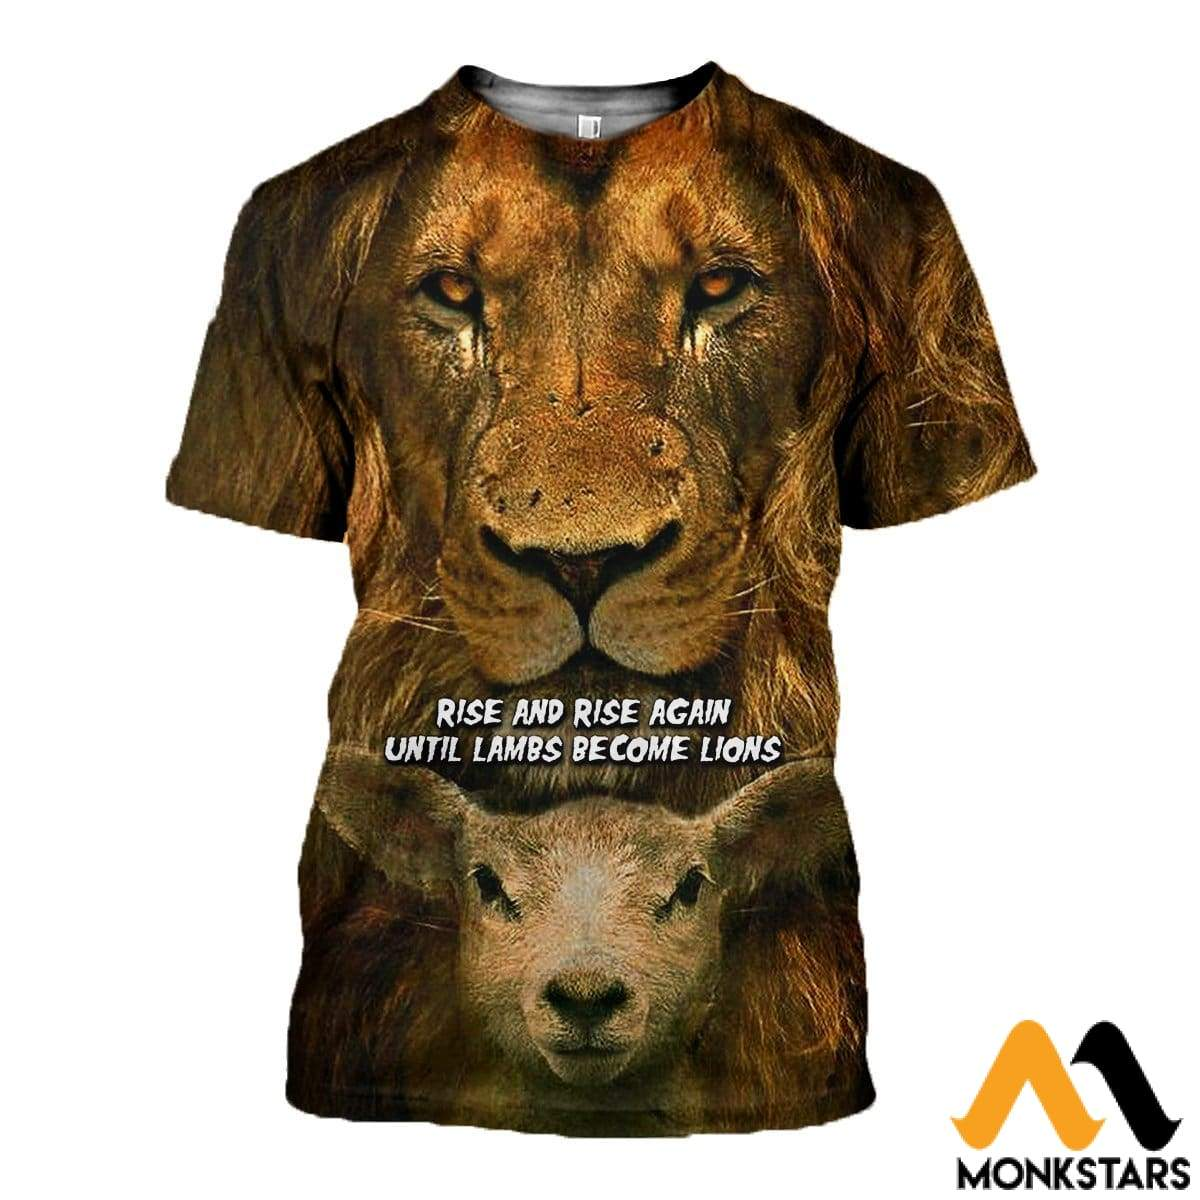 3D All Over Printed Becoming Lion T-Shirt Hoodie Sntk170406 / Xs Clothes